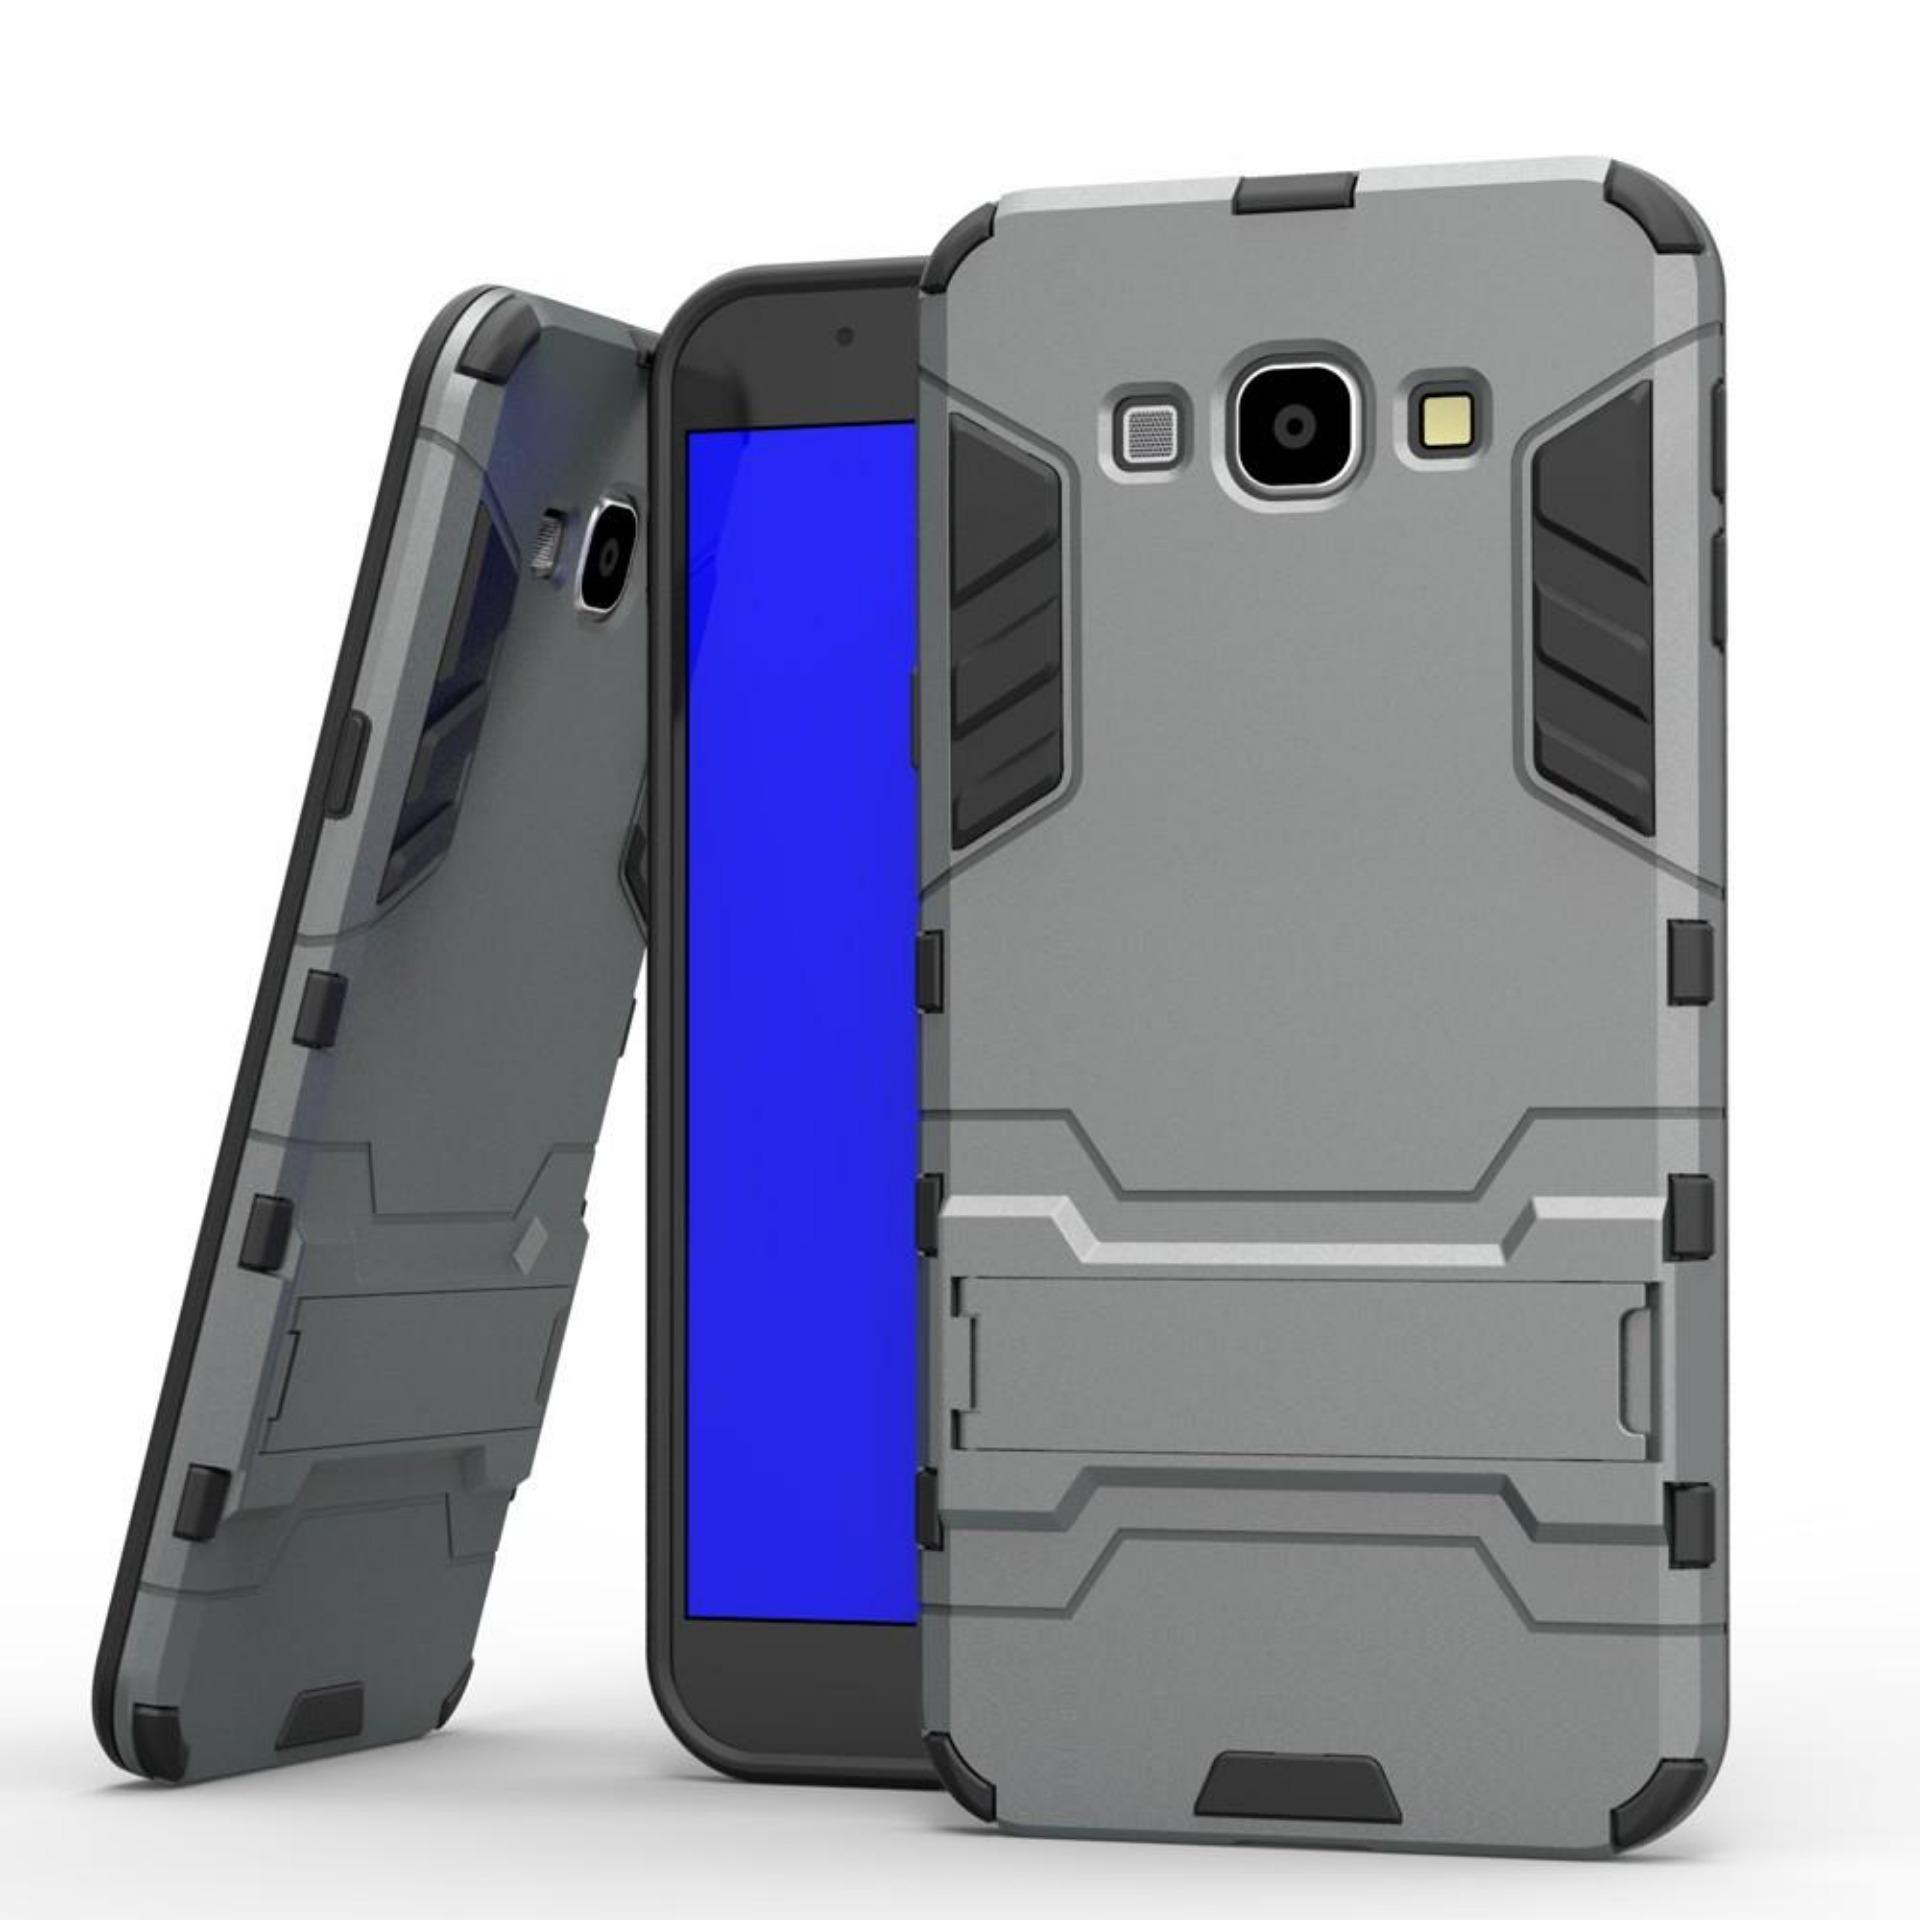 CASE EXECUTIVE IRON MAN 2 IN 1 ROBOT WITH STAND FOR SAMSUNG GALAXY J2 PRIME -